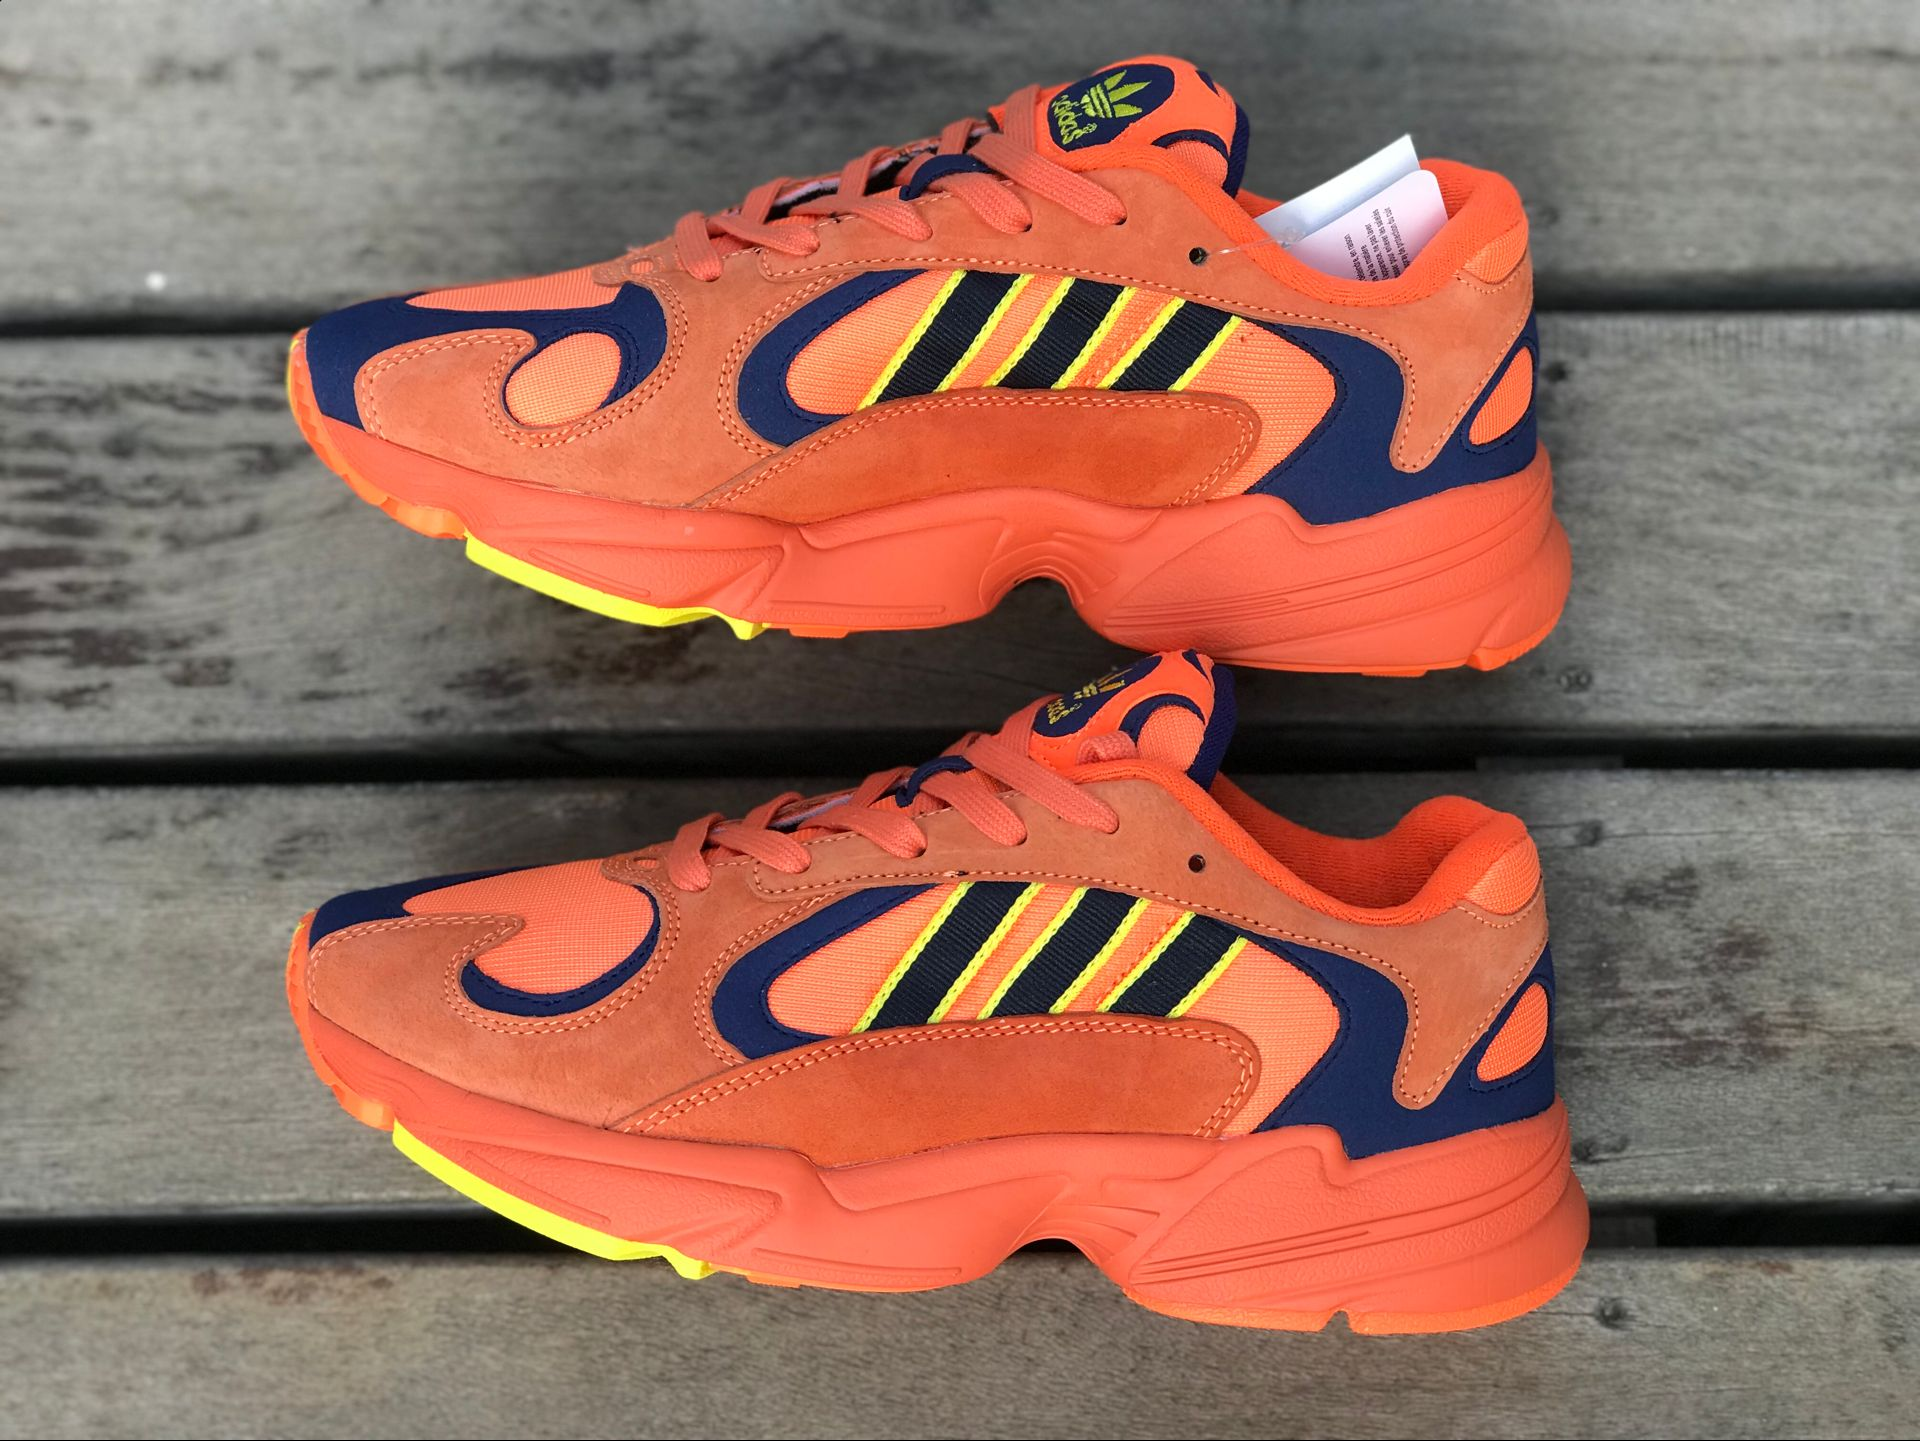 huge selection of c0673 d06cf wholesale adidas Yeezy 700 Boost 350 V2 Adidas Yung-1 Yeezy ...